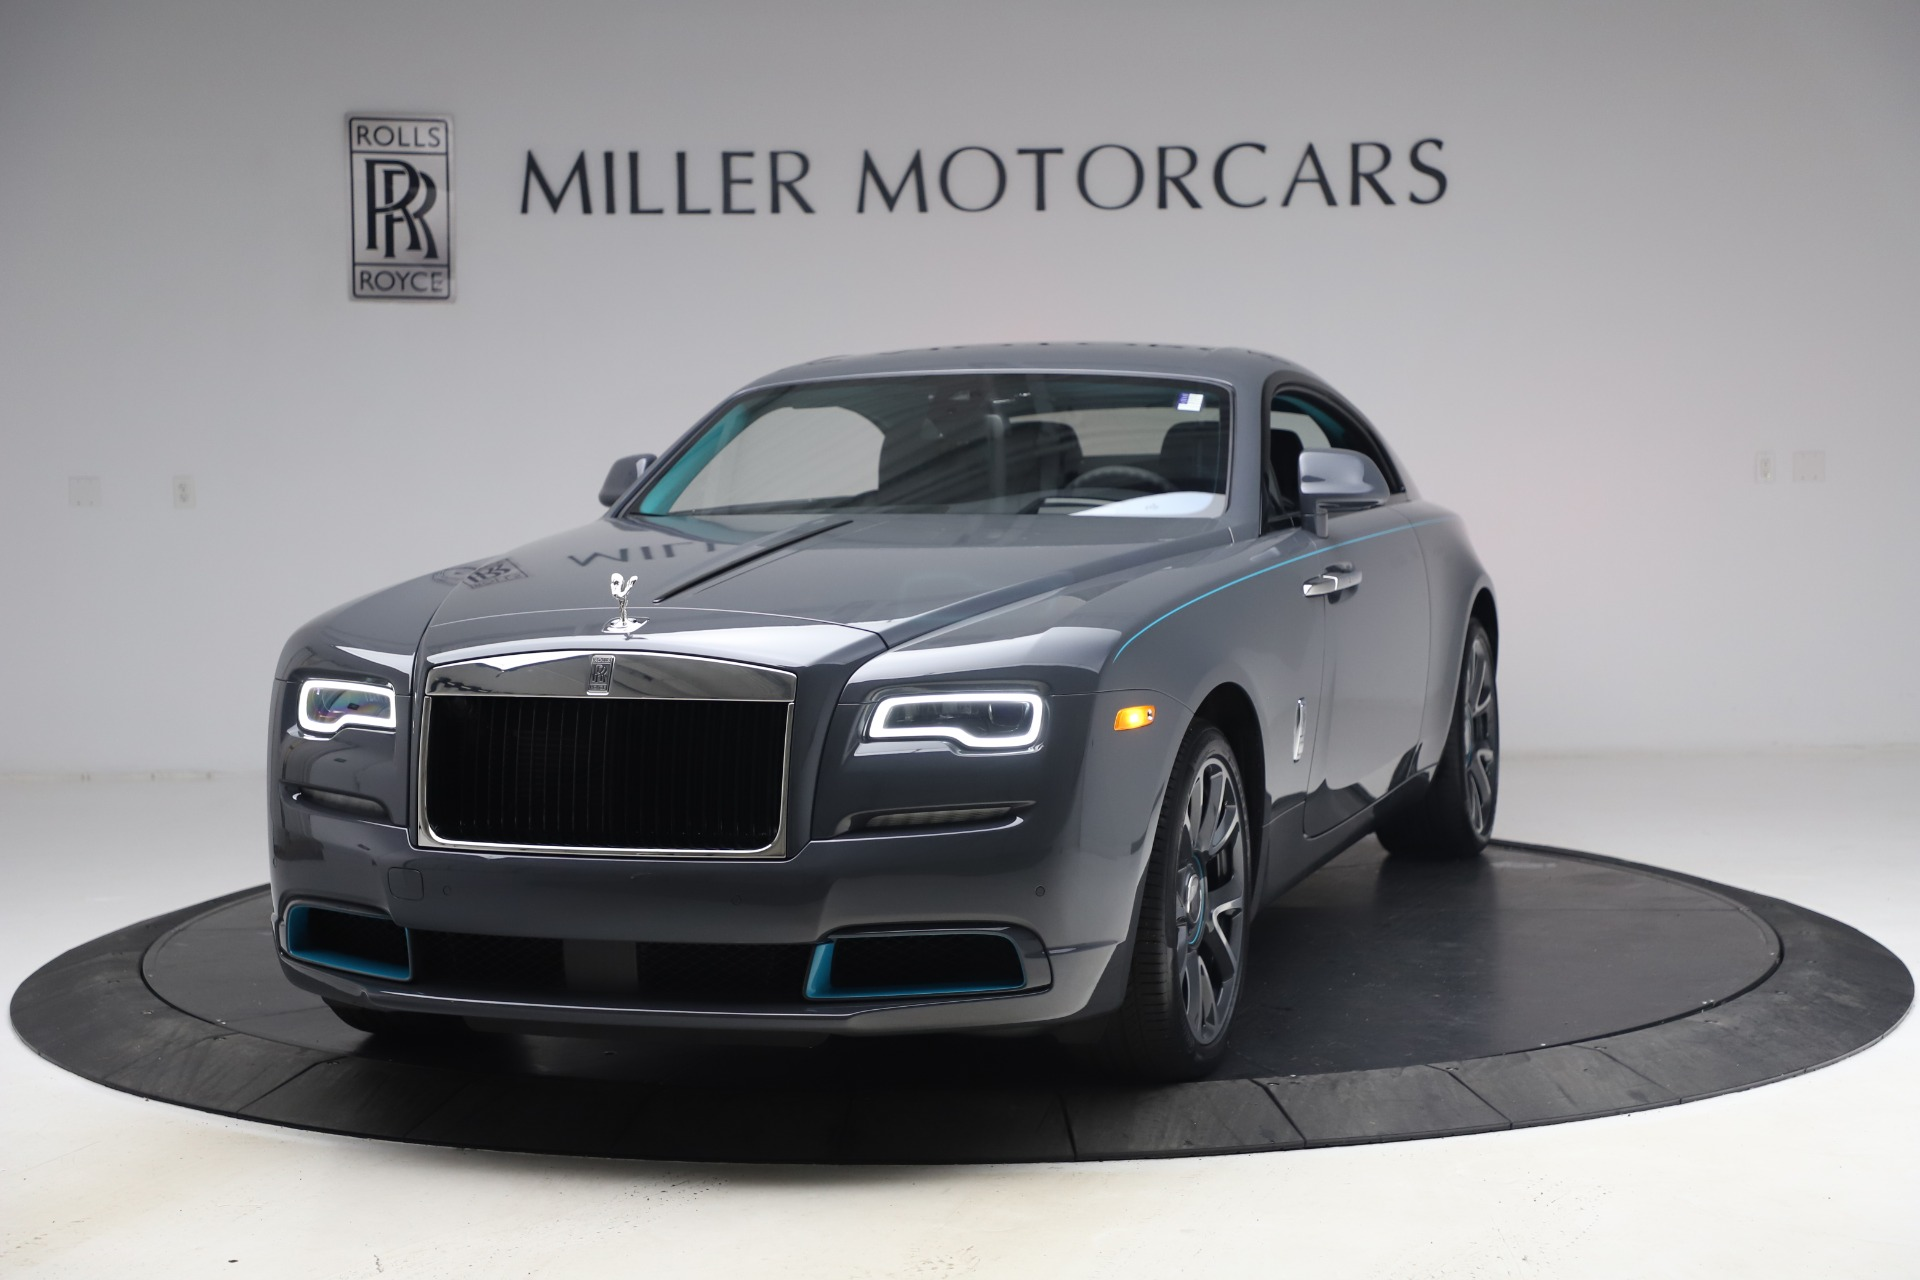 New 2021 Rolls-Royce Wraith KRYPTOS for sale $450,550 at Rolls-Royce Motor Cars Greenwich in Greenwich CT 06830 1